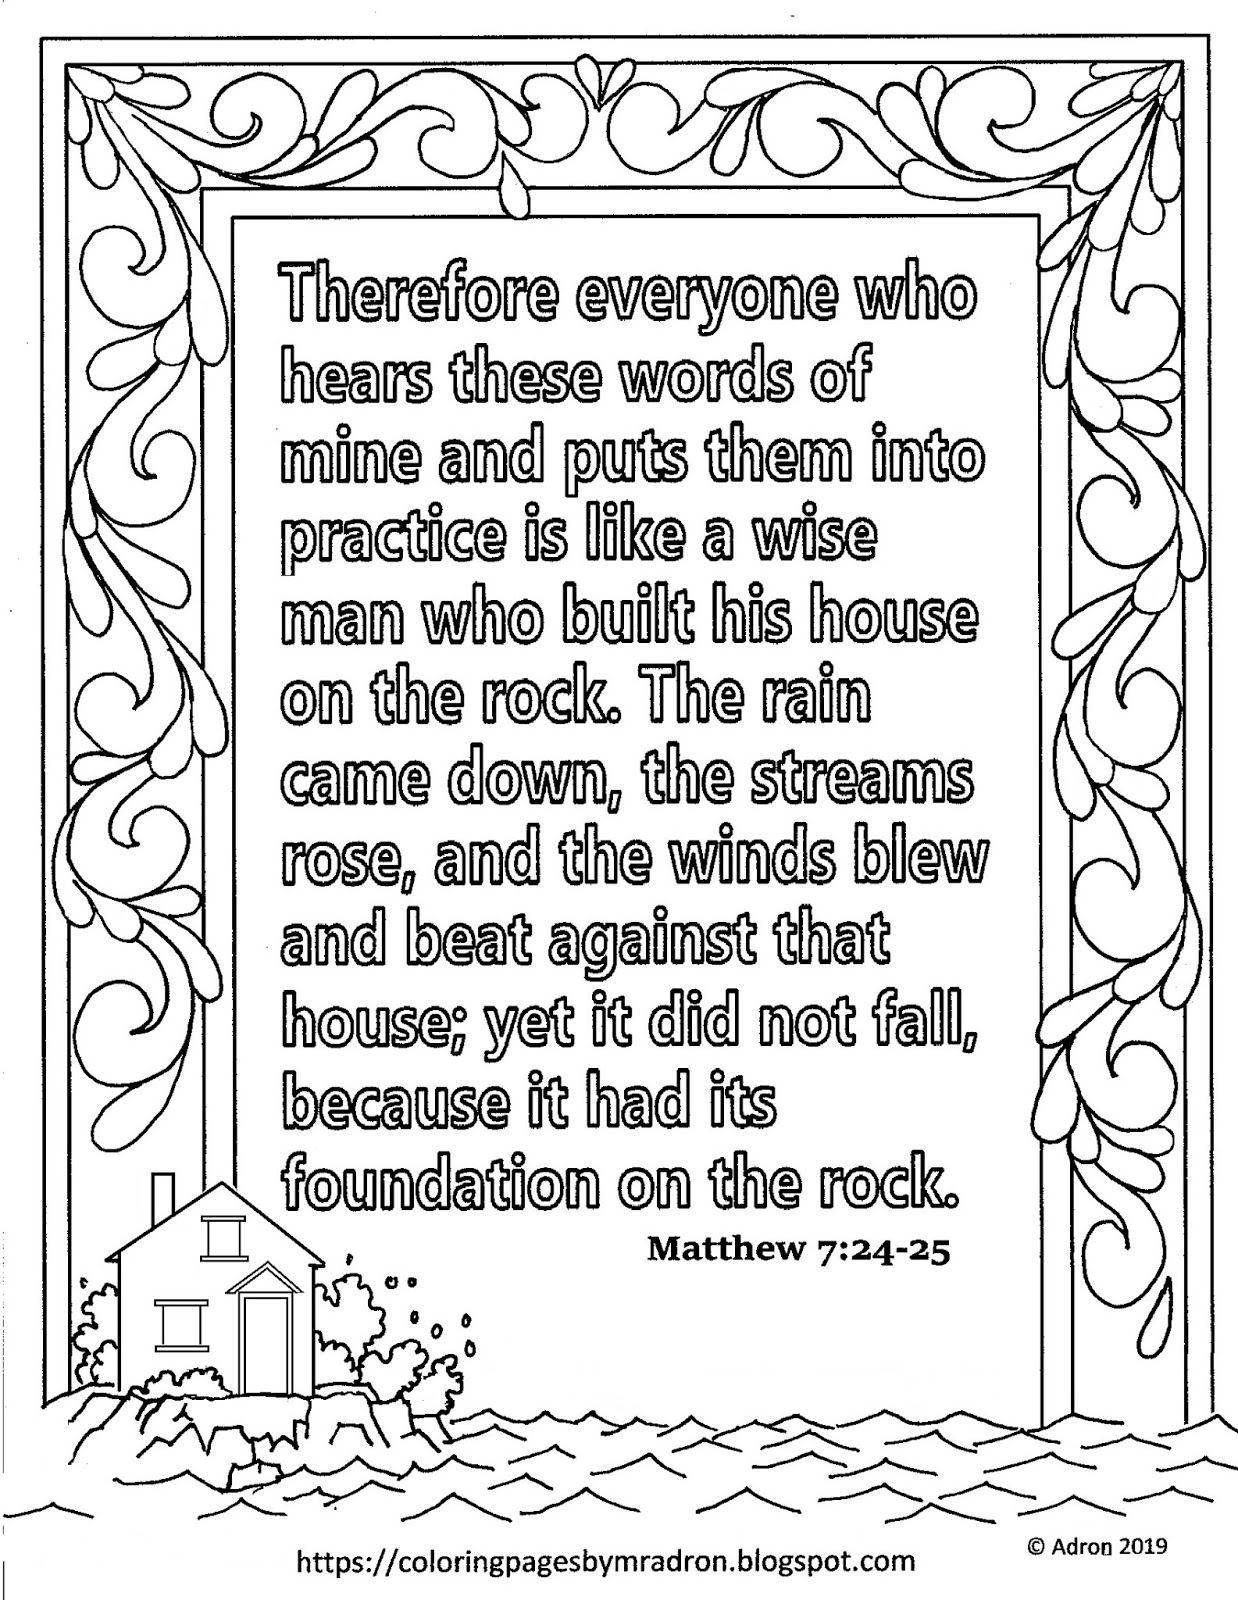 Coloring Pages for Kids by Mr  Adron: Free Matthew 7:24-25